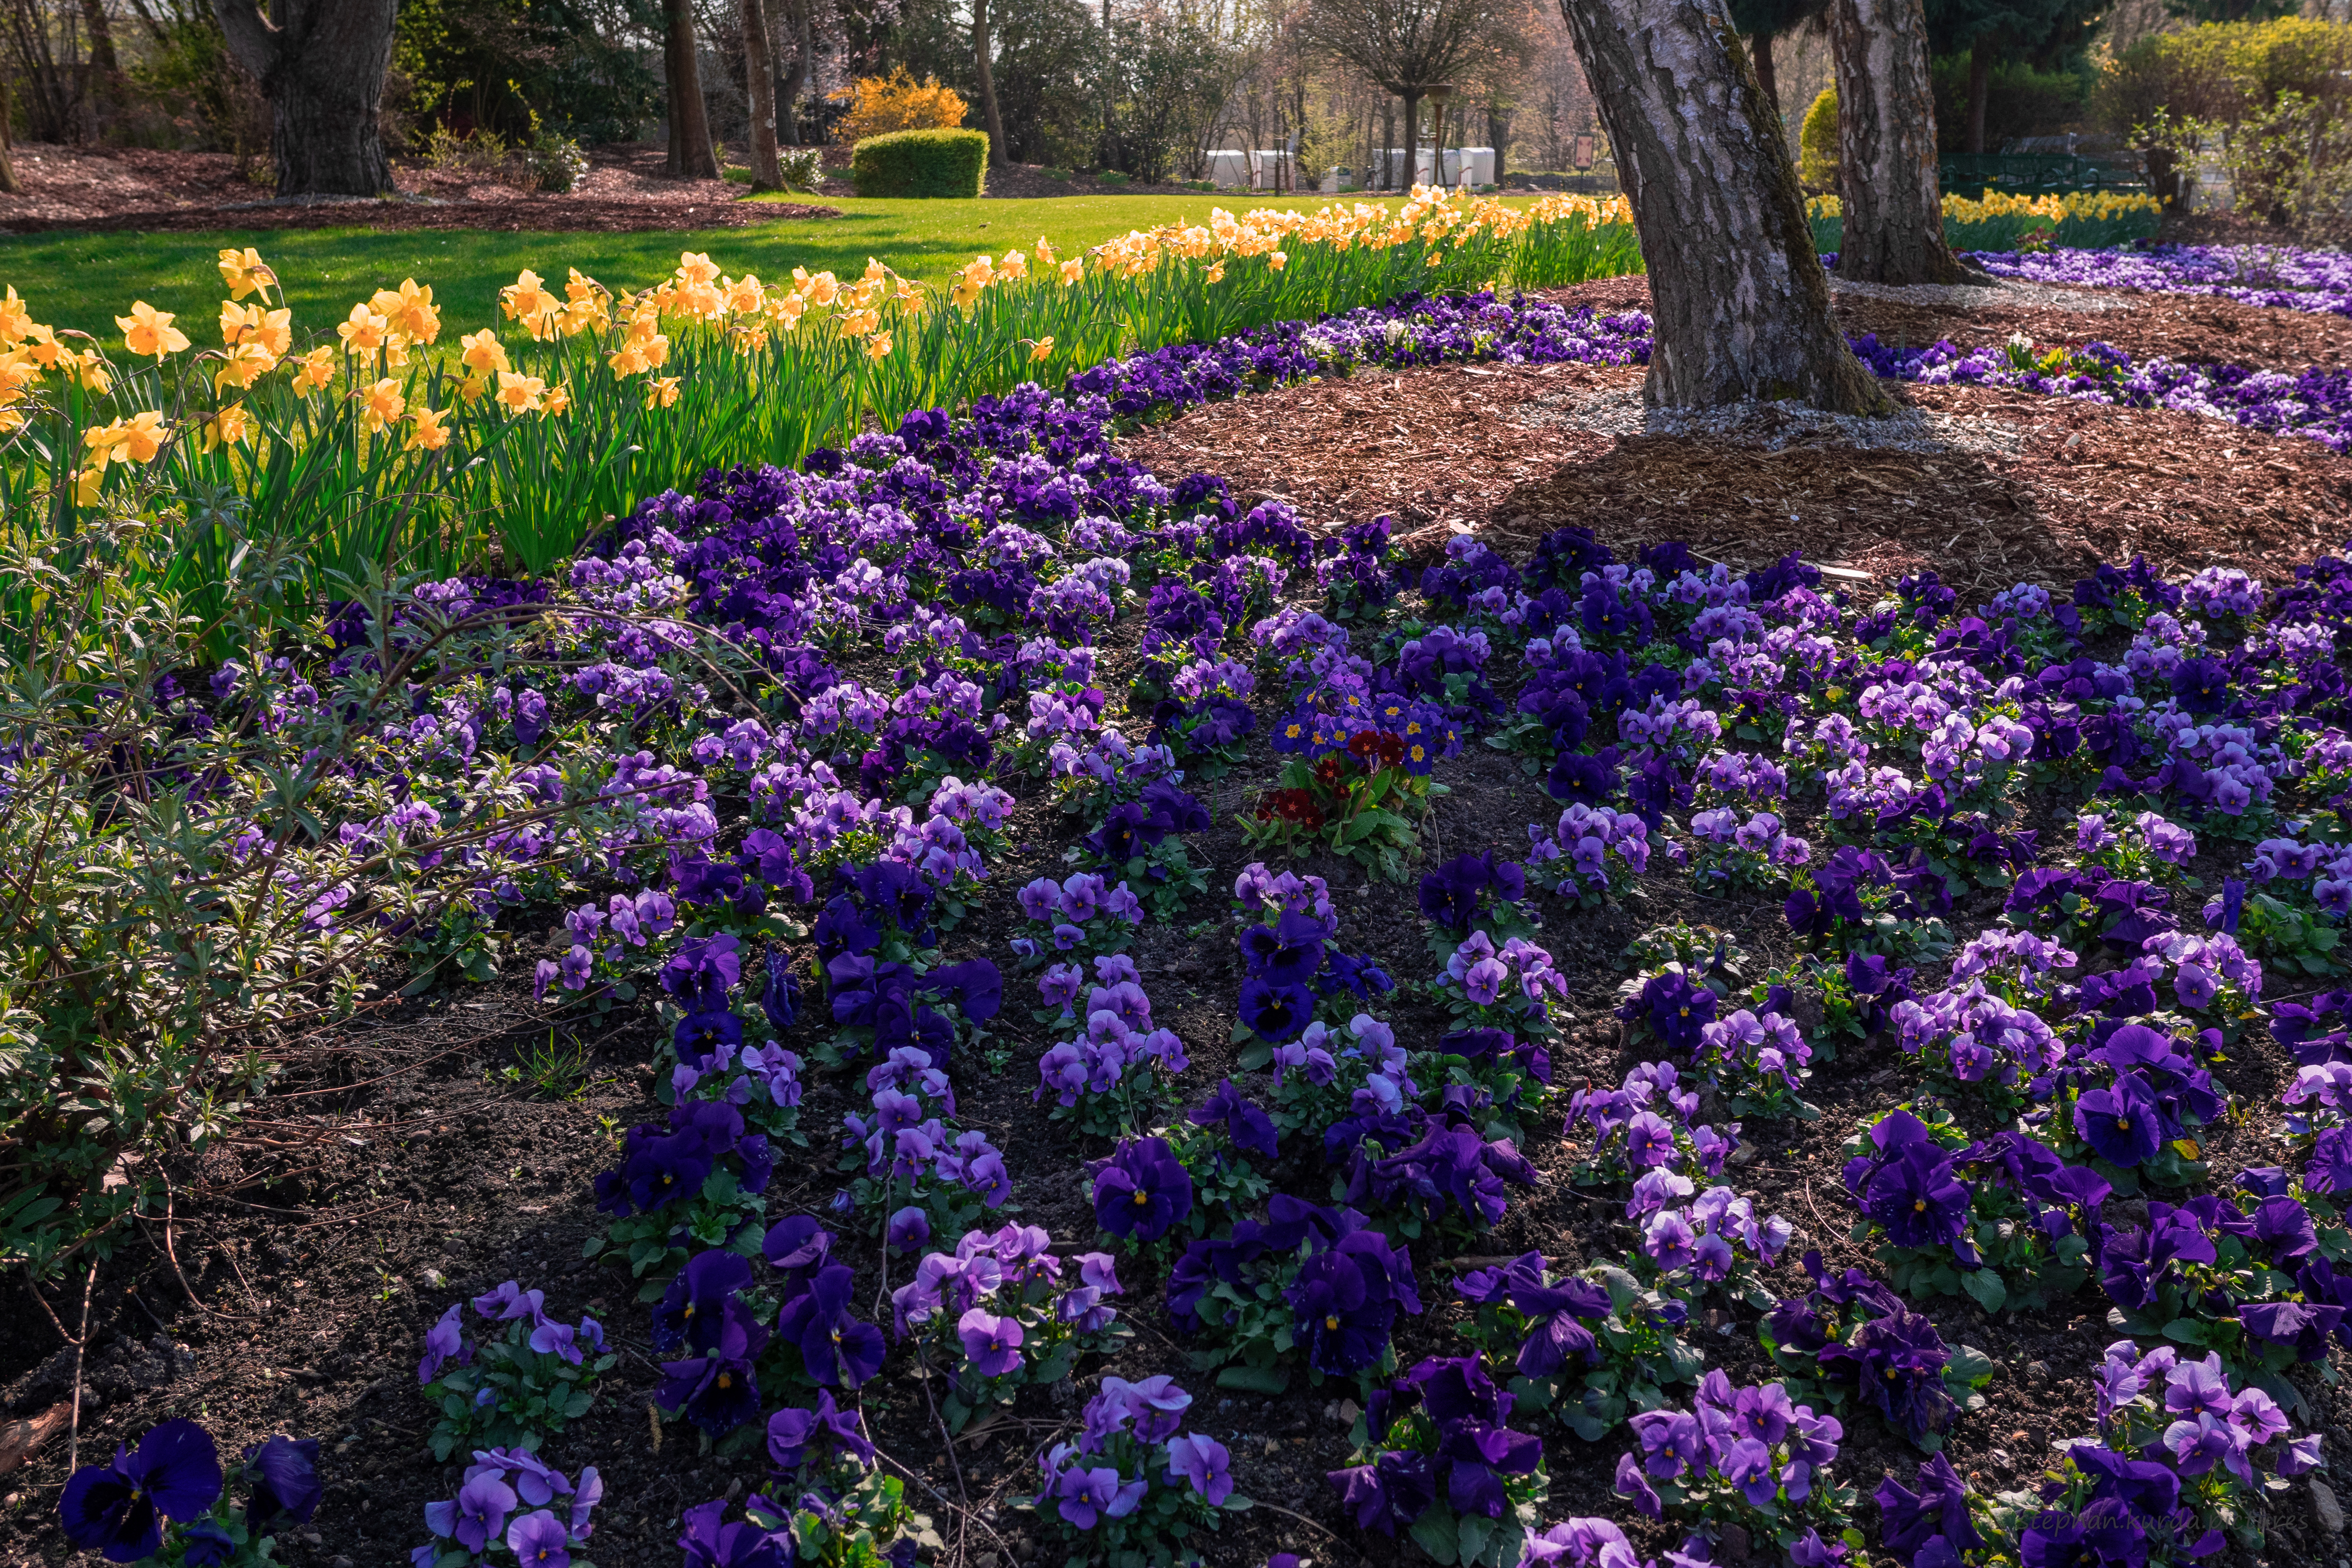 Spring flowers in a parc